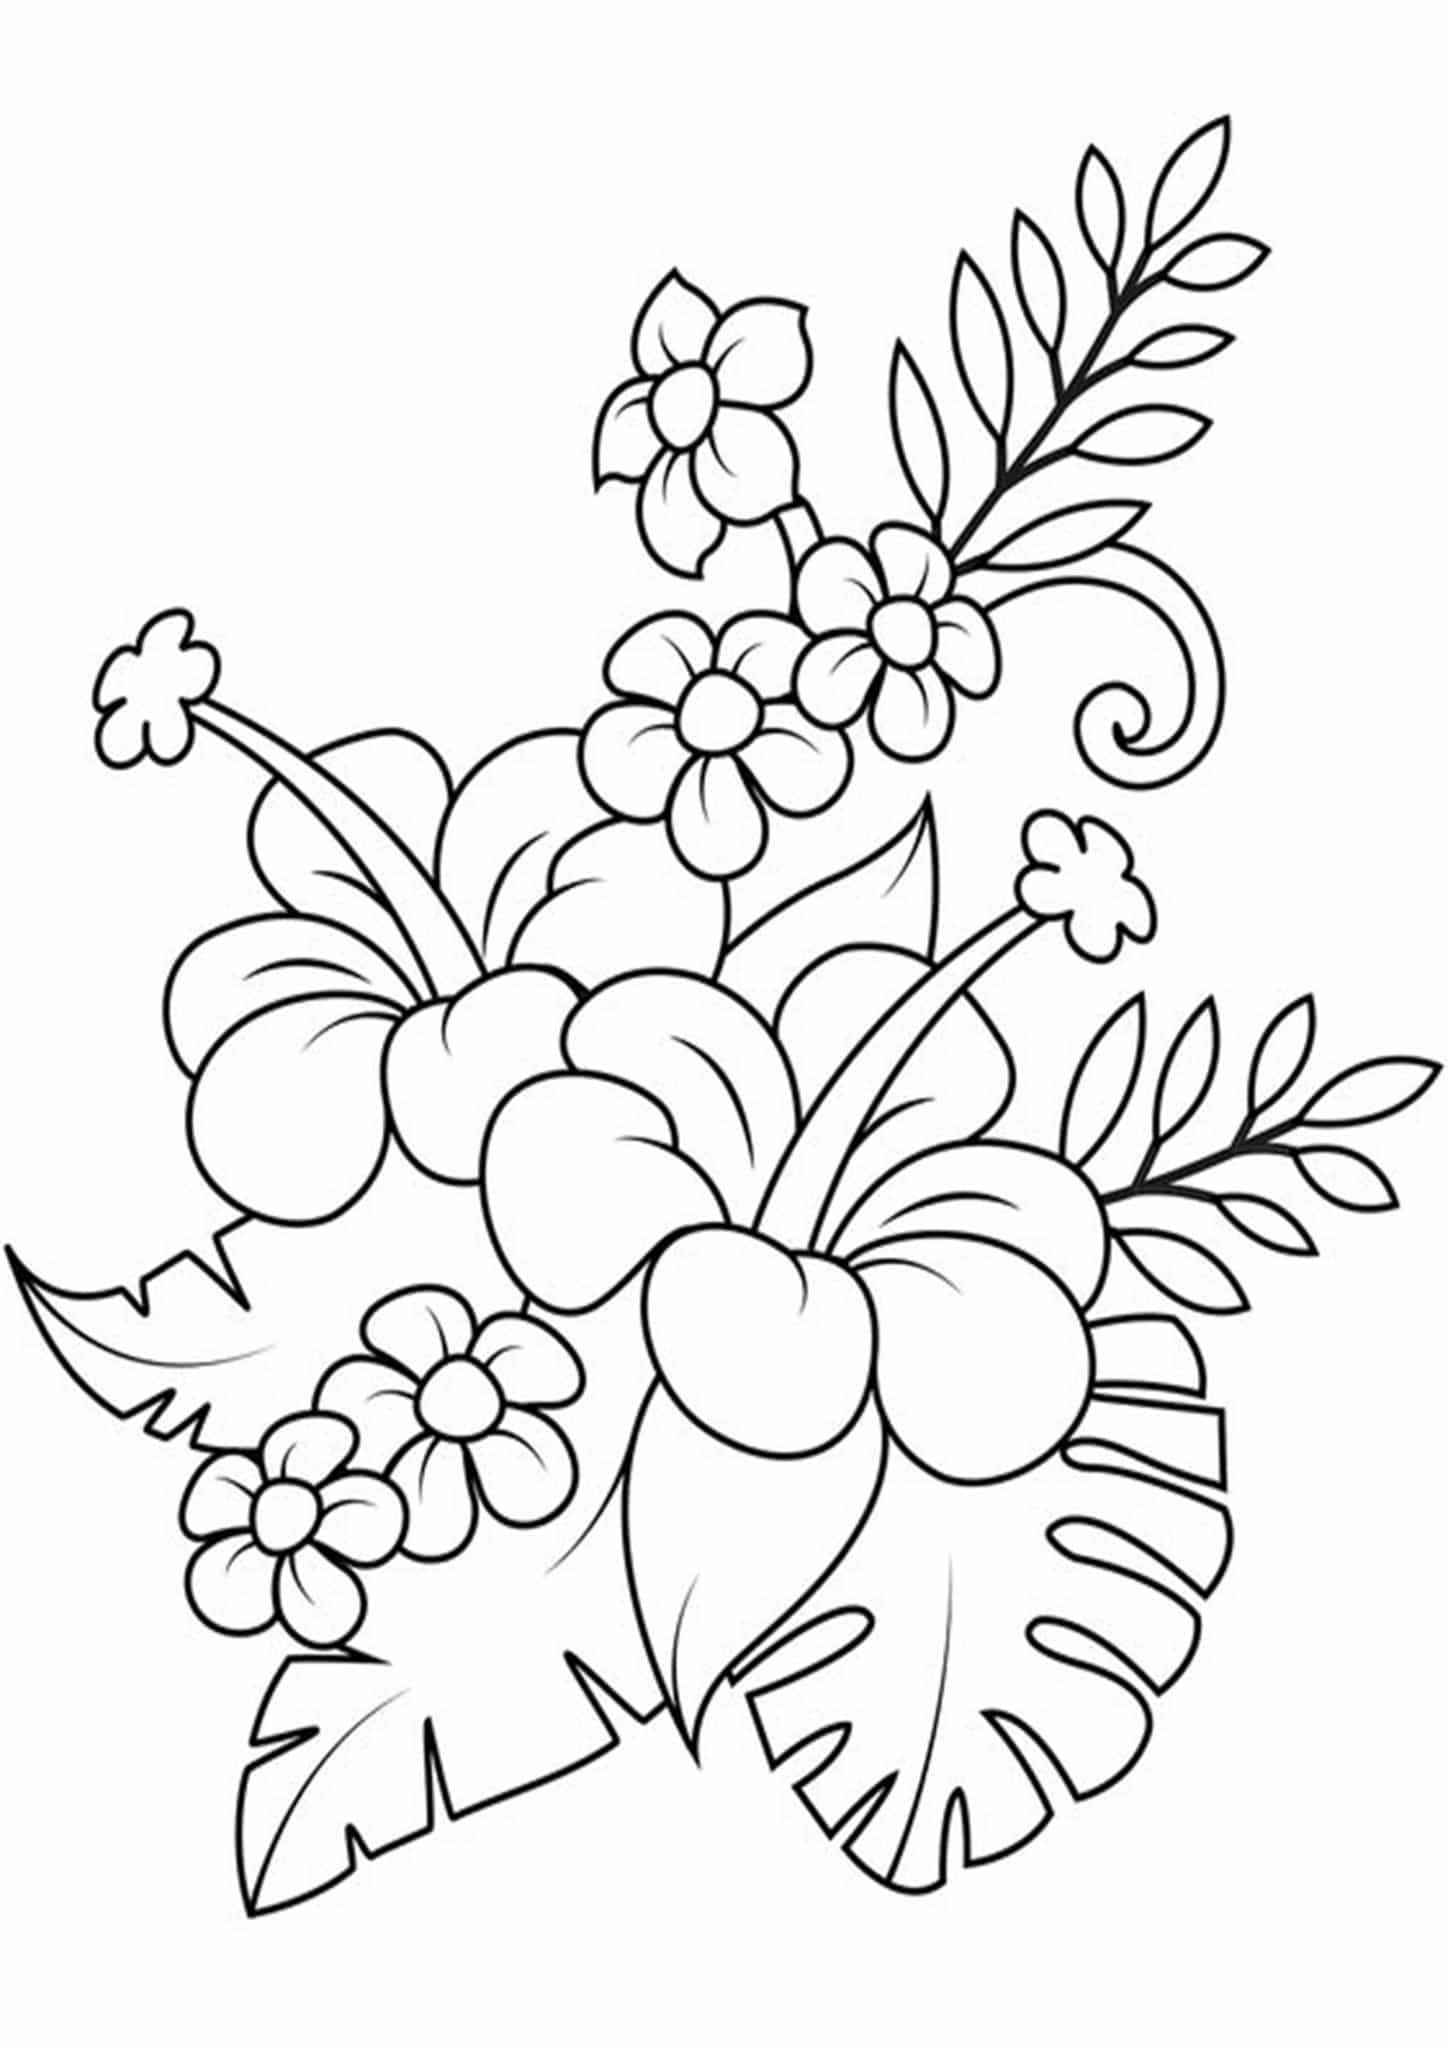 free flower coloring sheets free printable flower coloring pages for kids best flower coloring sheets free